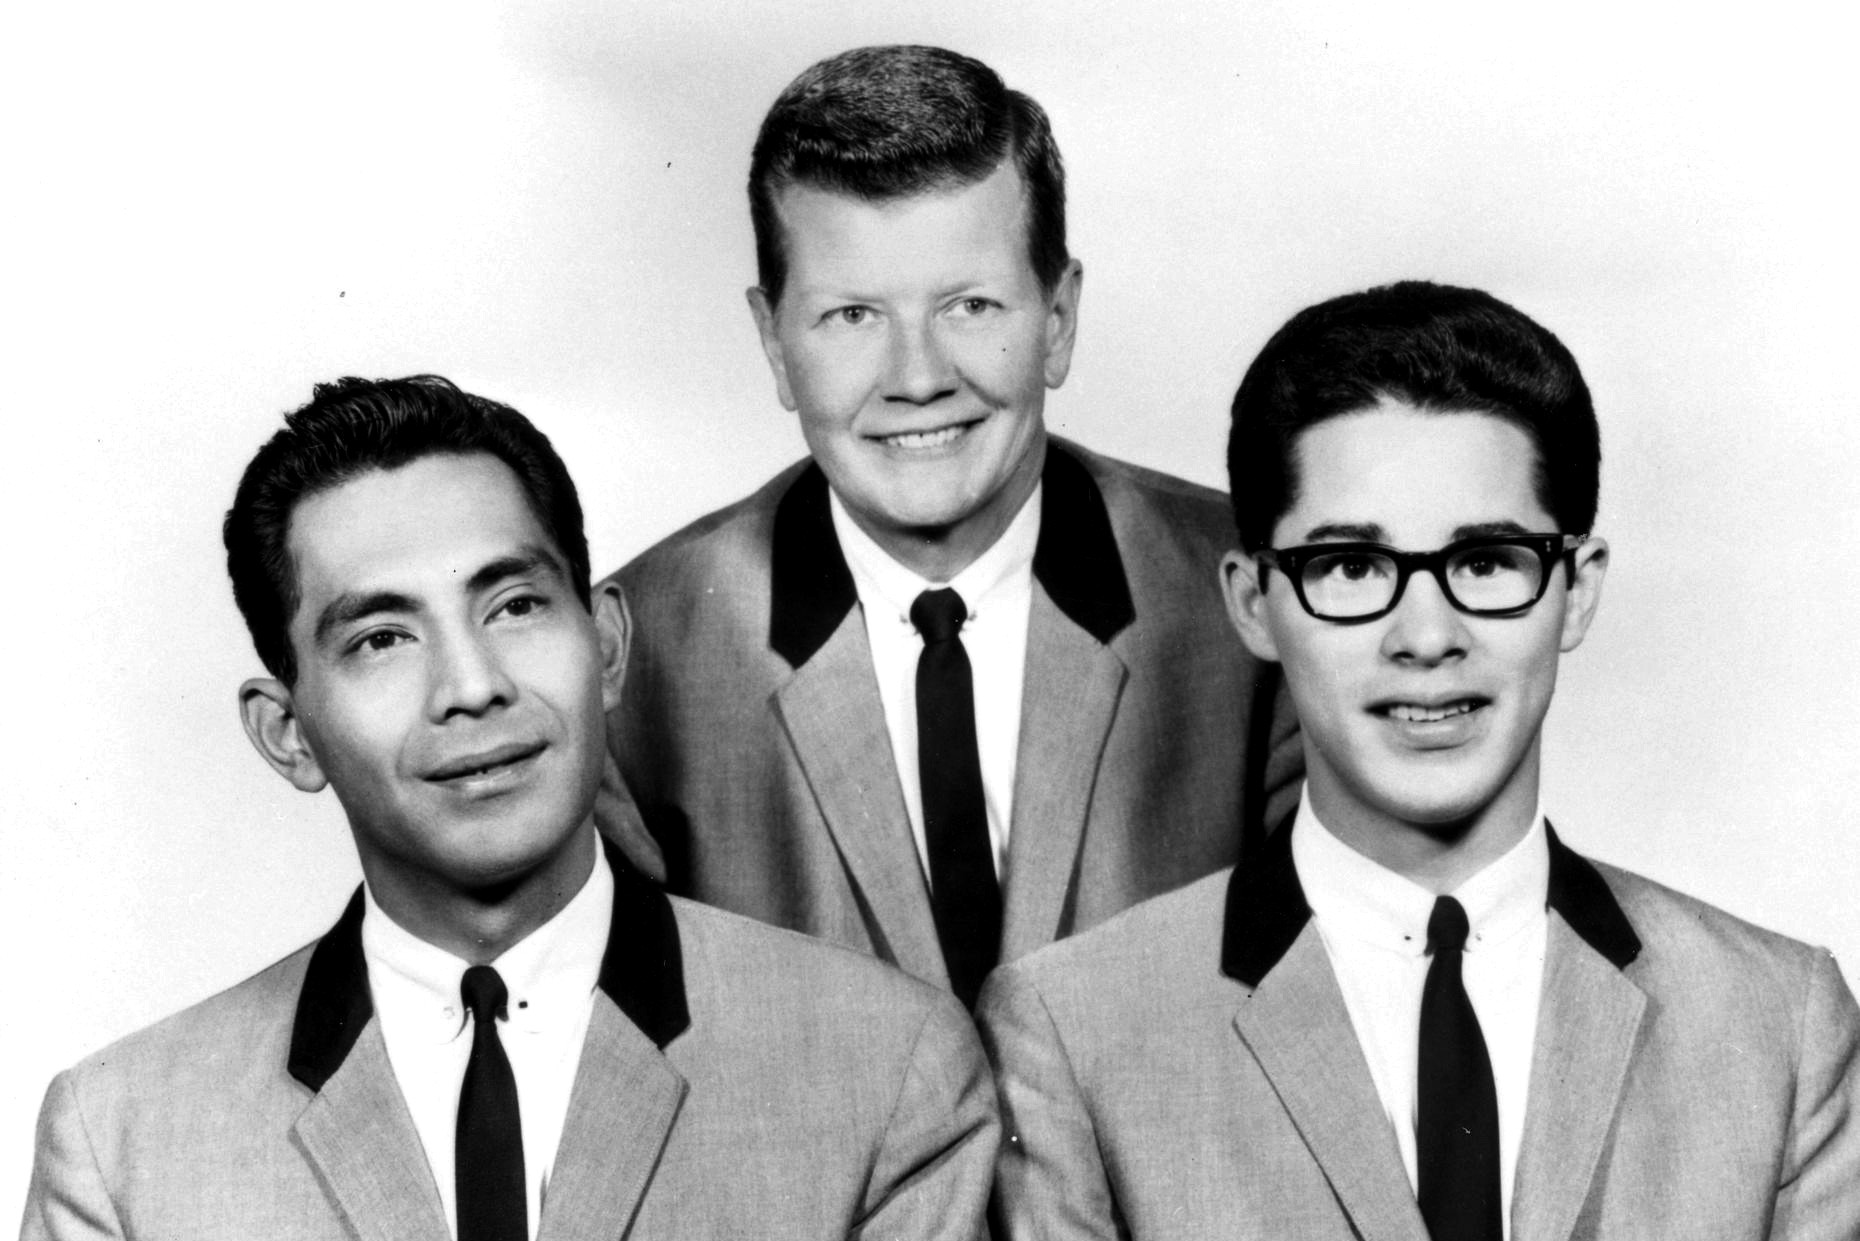 Billy Tipton (center) was a renowned Spokane-based jazz musician.